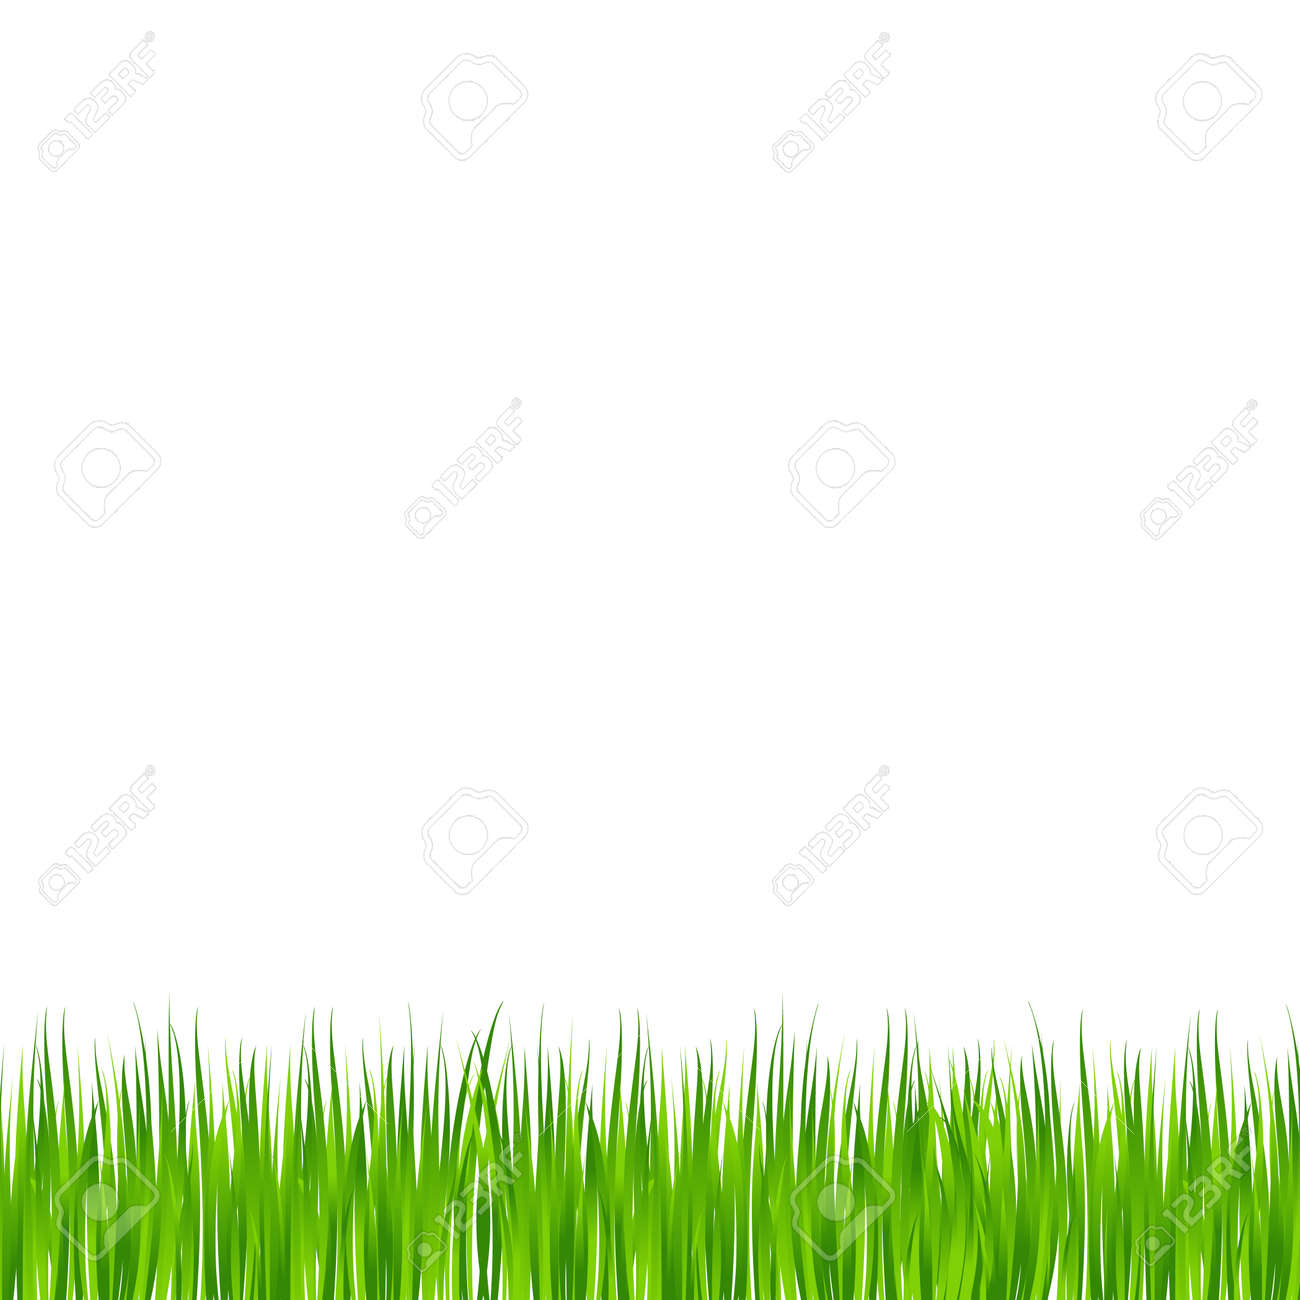 Realistic green meadow grass on white background - Vector illustration - 168677001